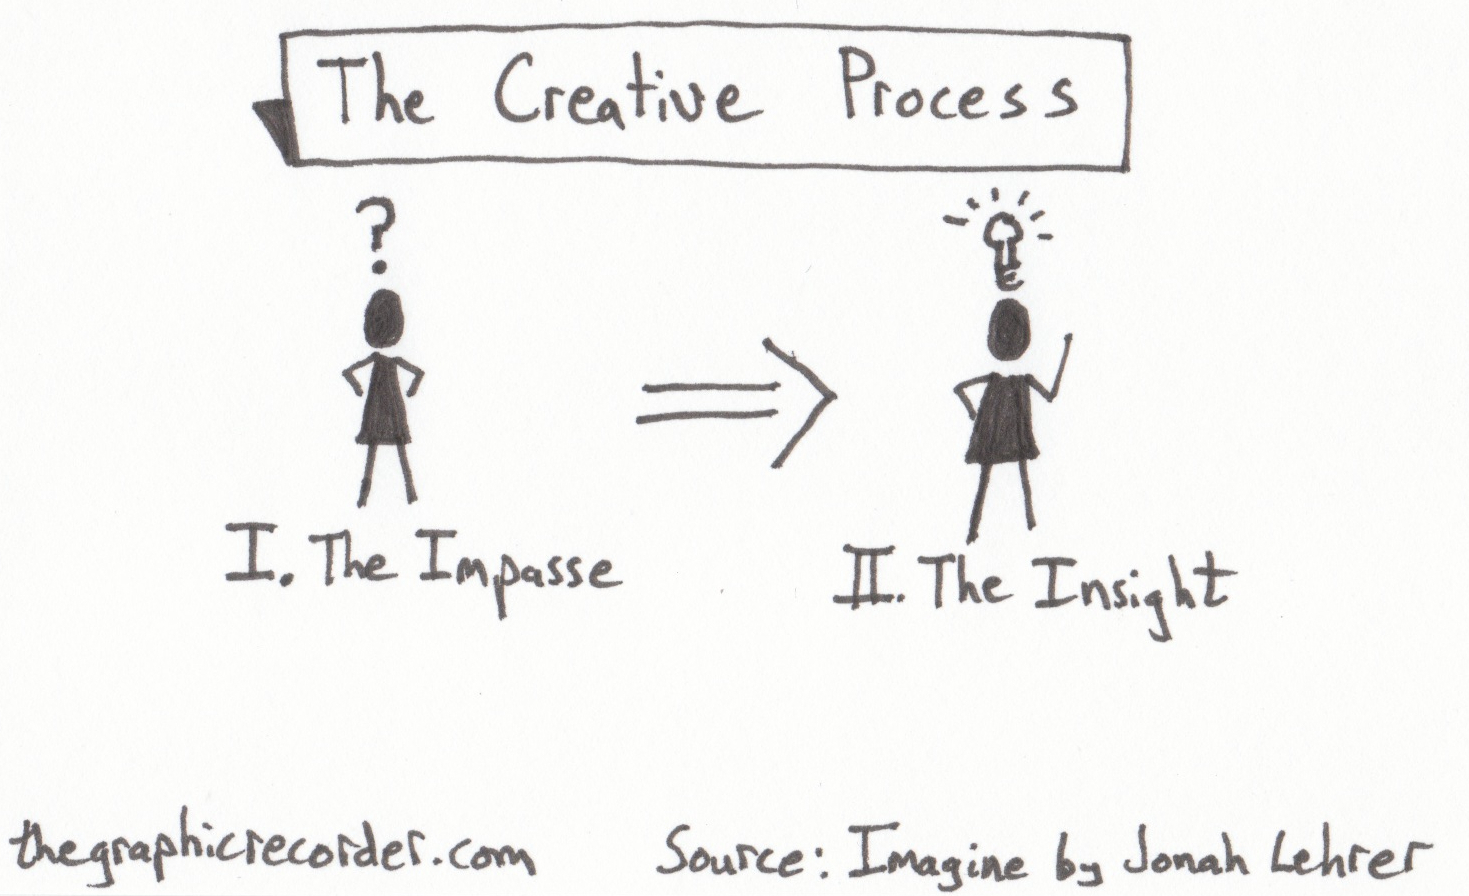 The Graphic Recorder - Note Card Sketch Notes Post - One Card One Concept - Creative Process - Jonah Lehrer - Imagine